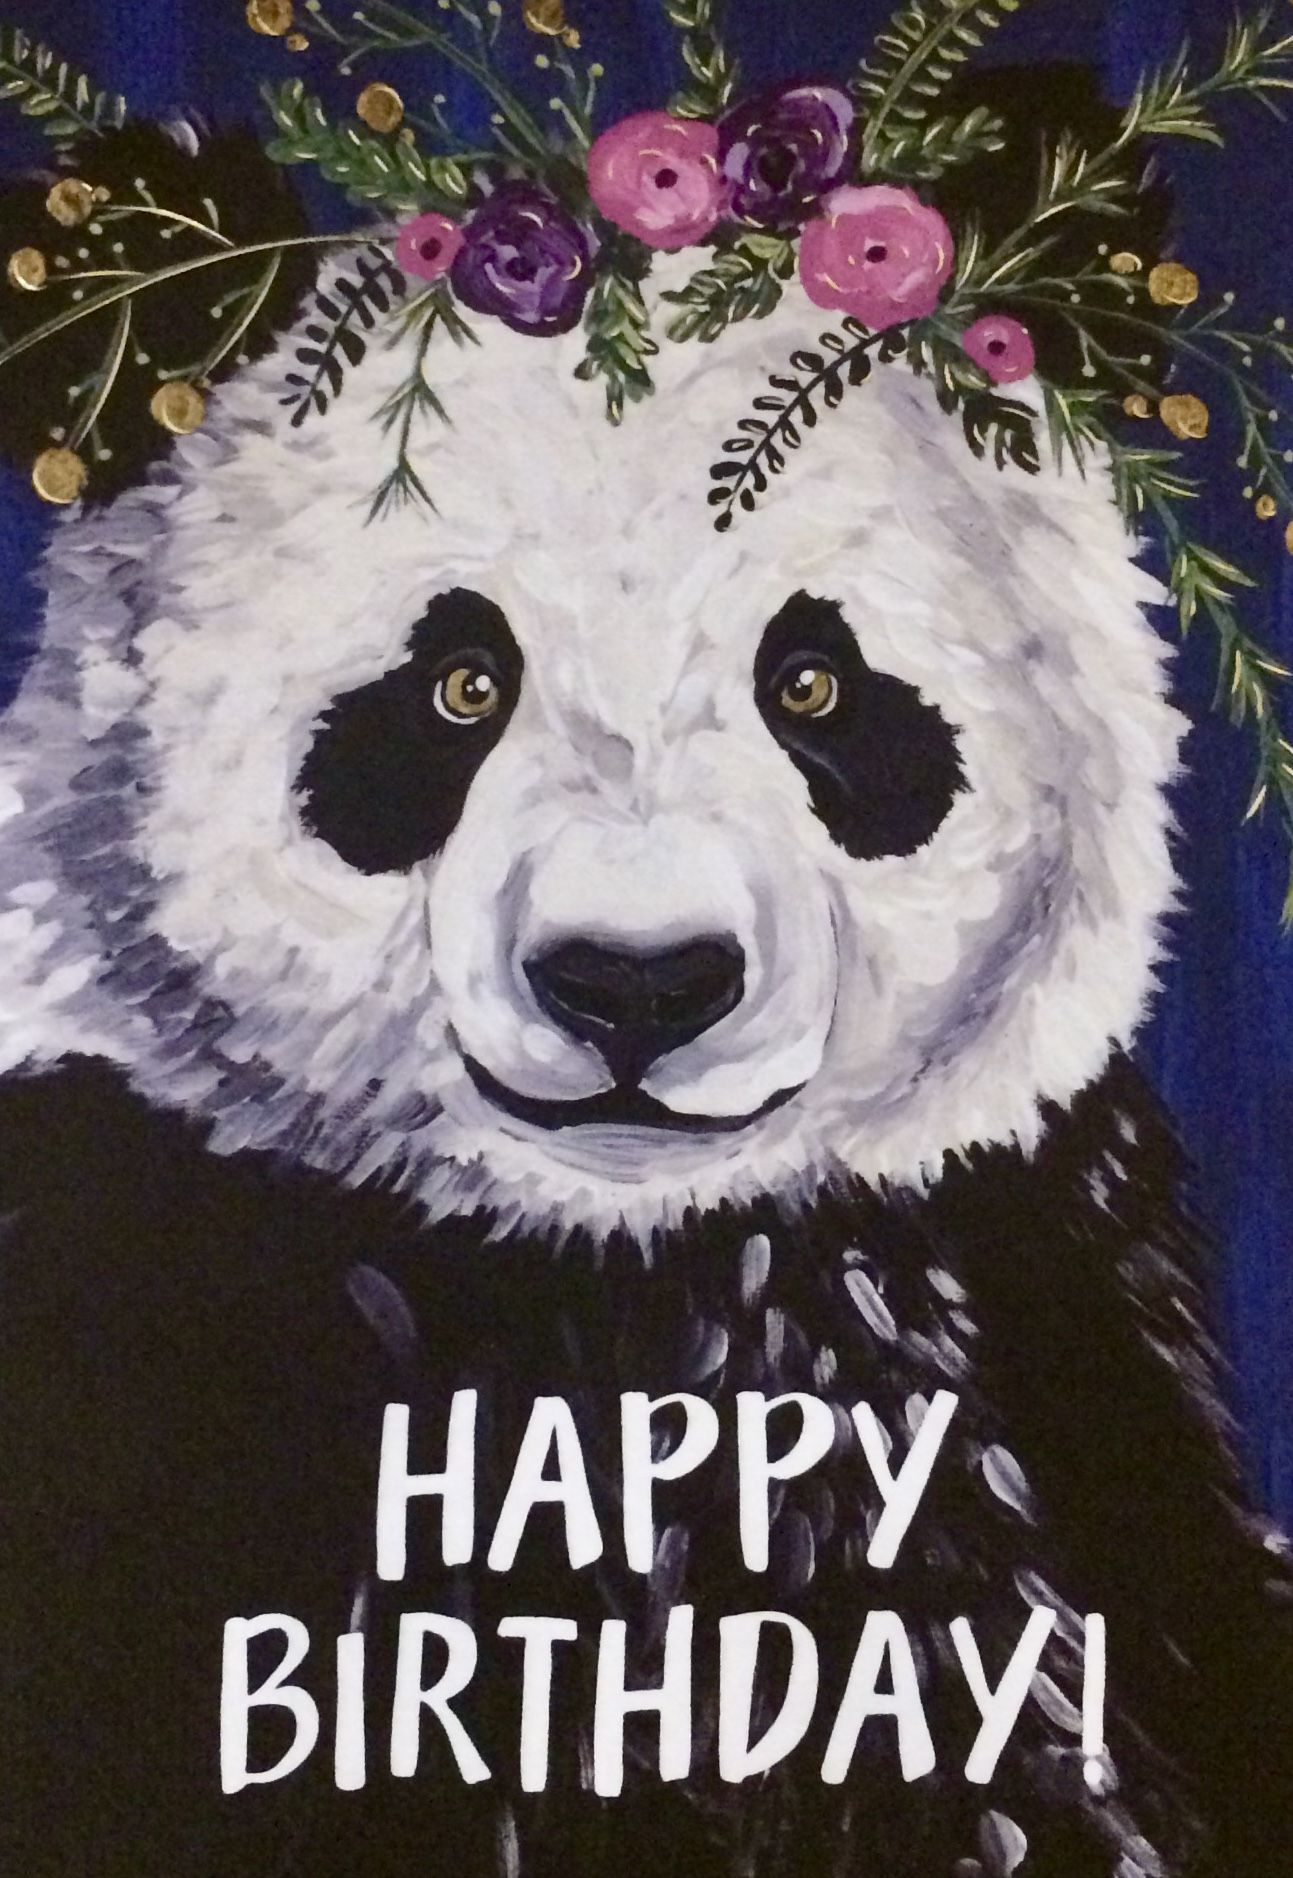 Panda Wild Animal Birthday Card Free Delivery